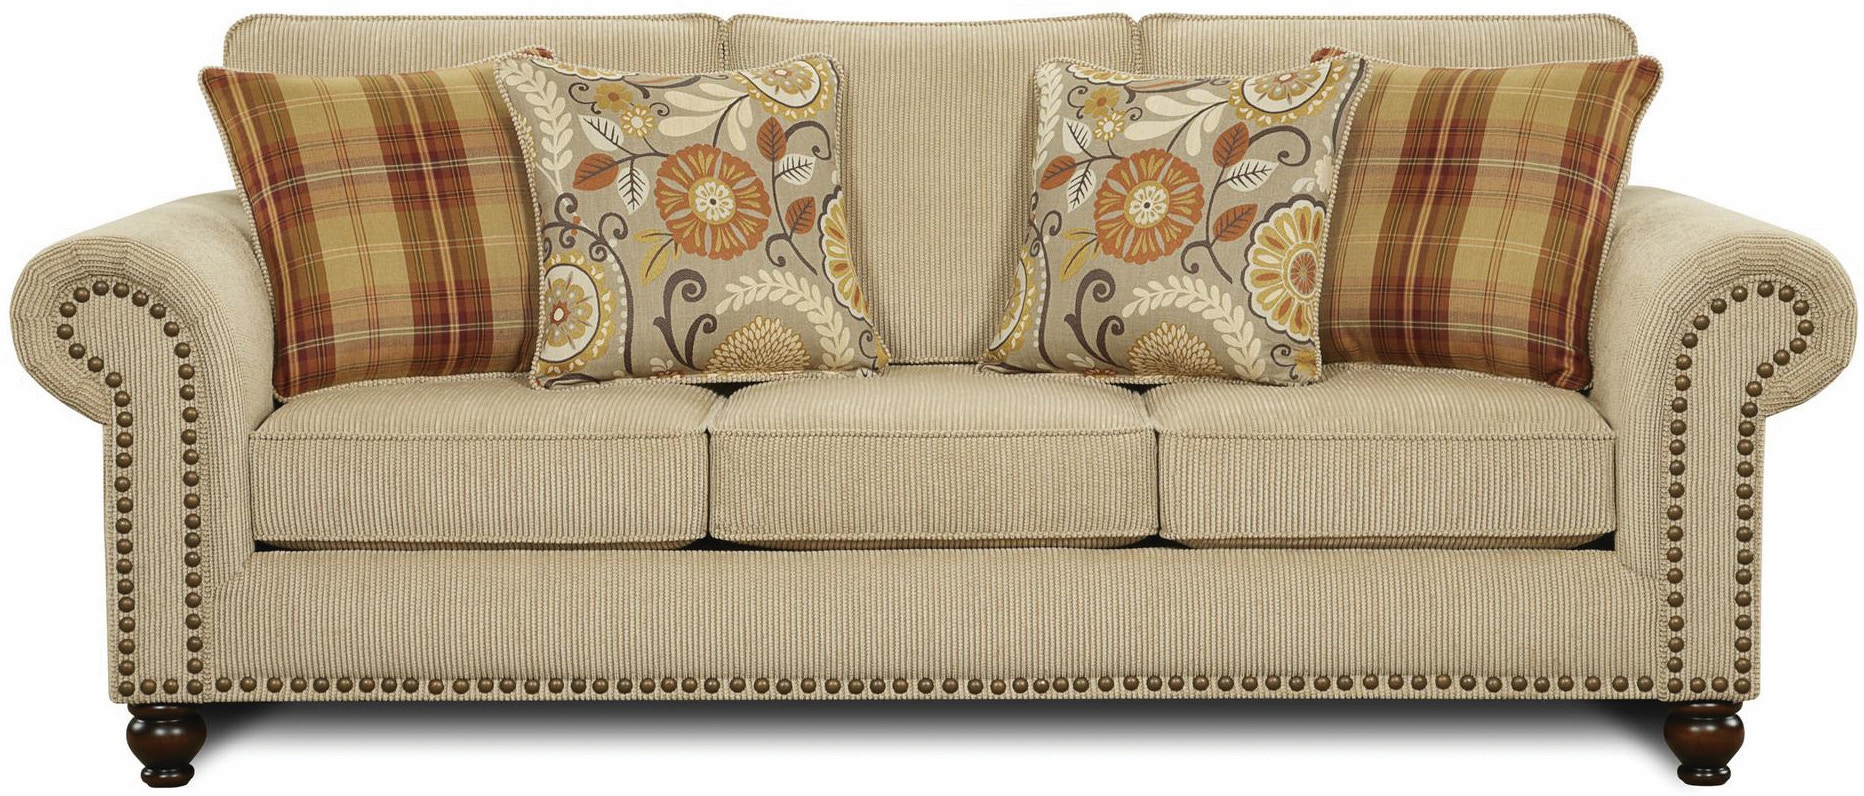 Fusion Living Room Out West Linen Sofa 043792 Furniture